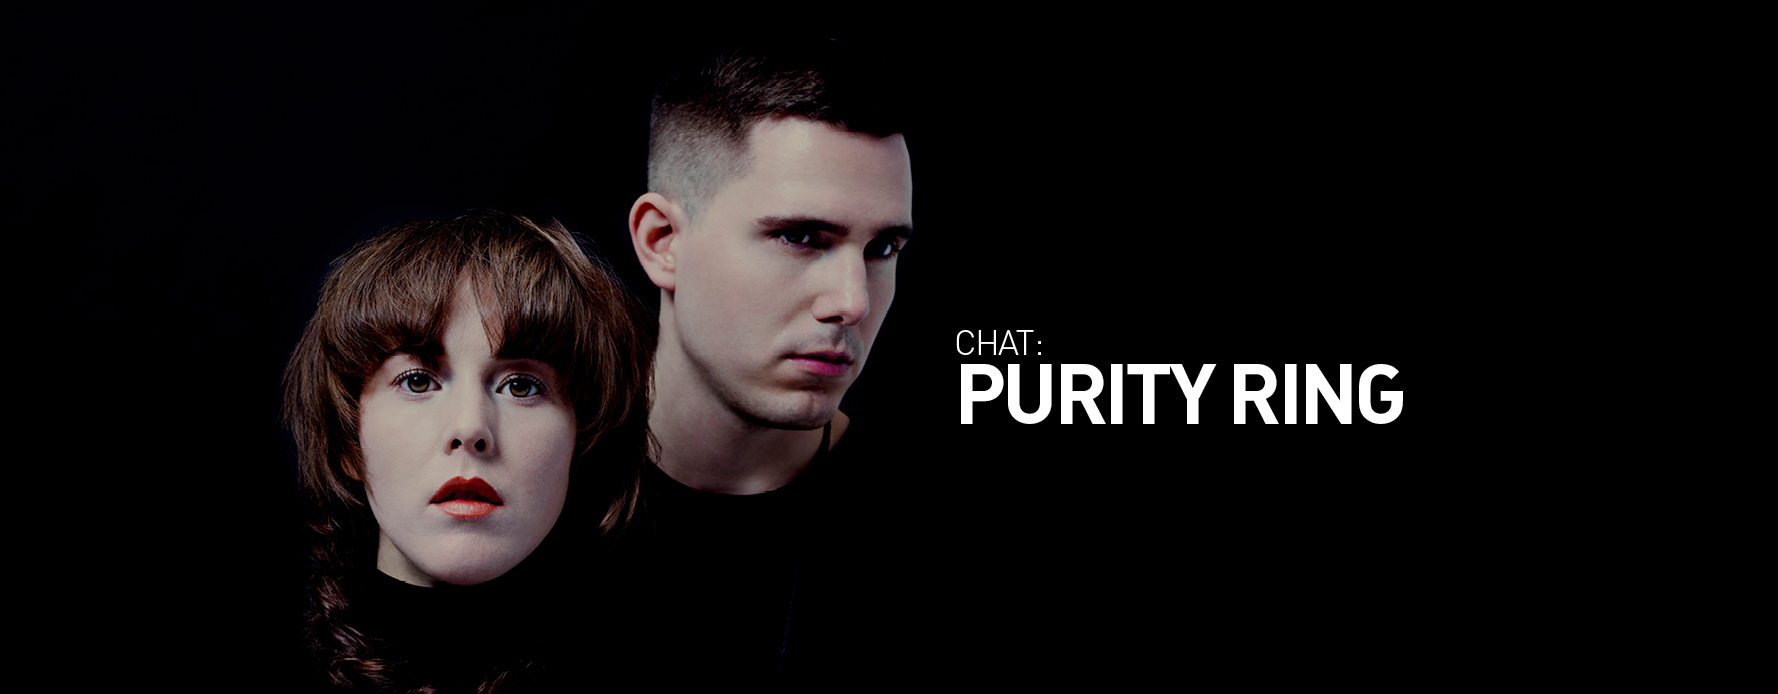 source: Purity Ring